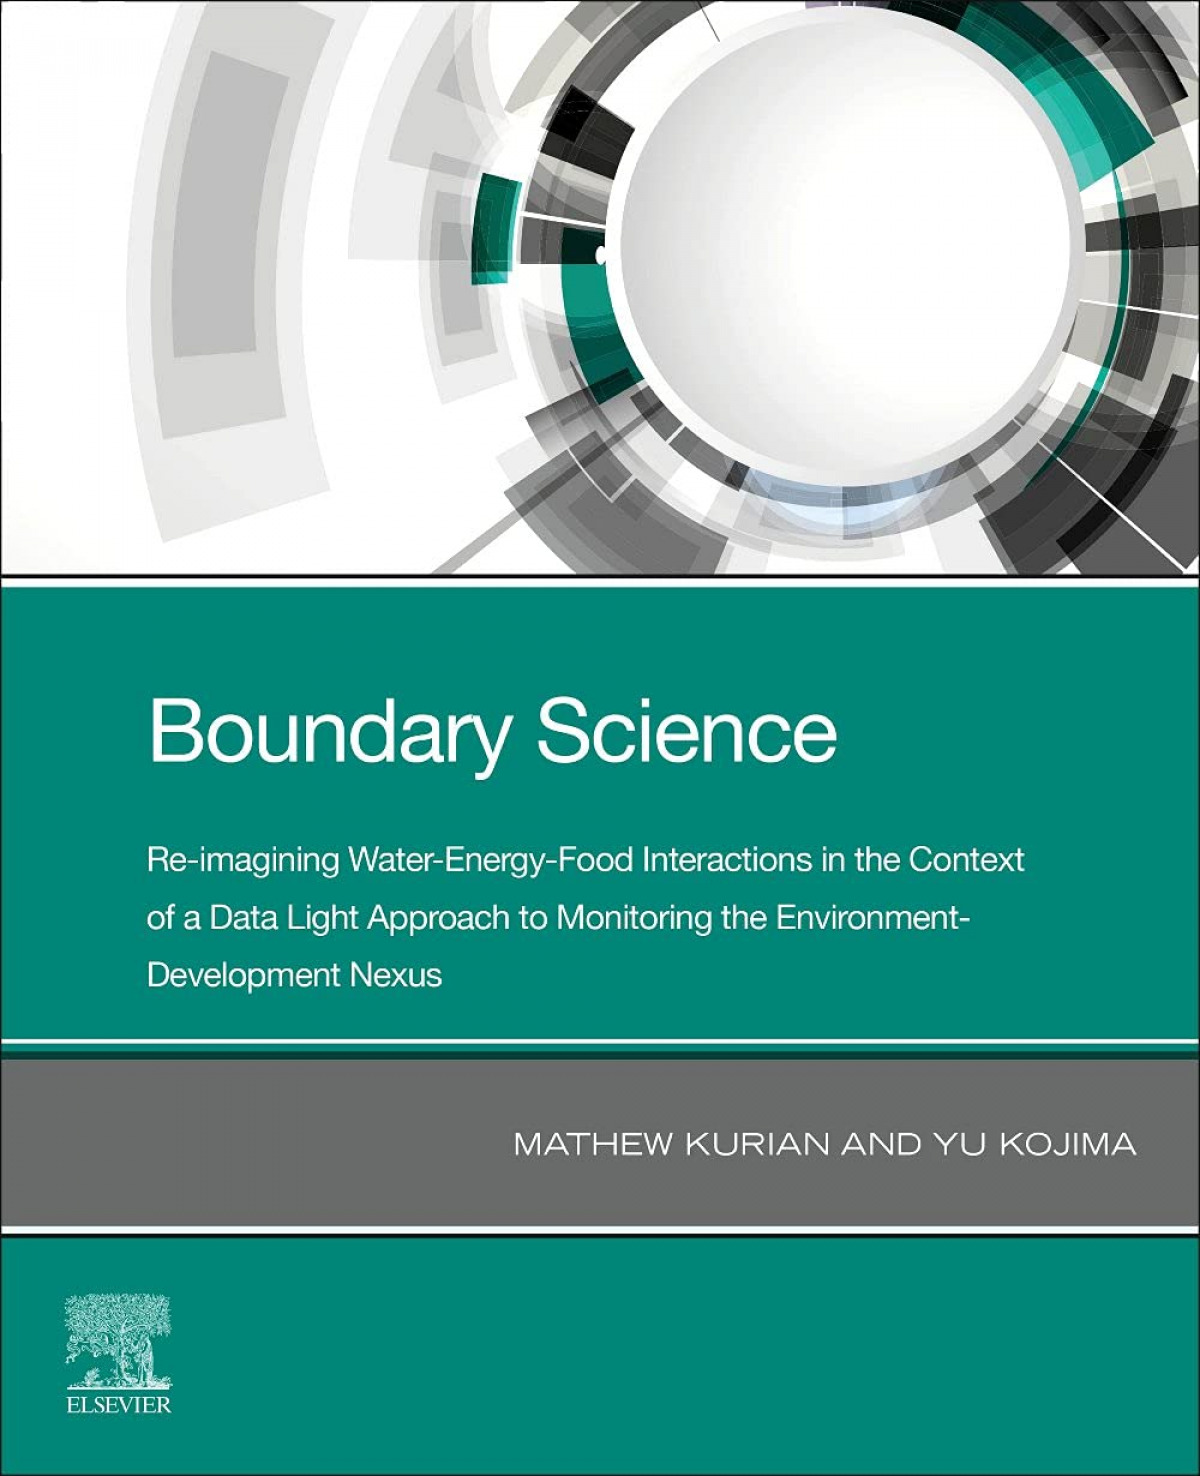 BOUNDARY SCIENCE:RE-IMAGINING WATER-ENERGY-FOOD INTERACTION